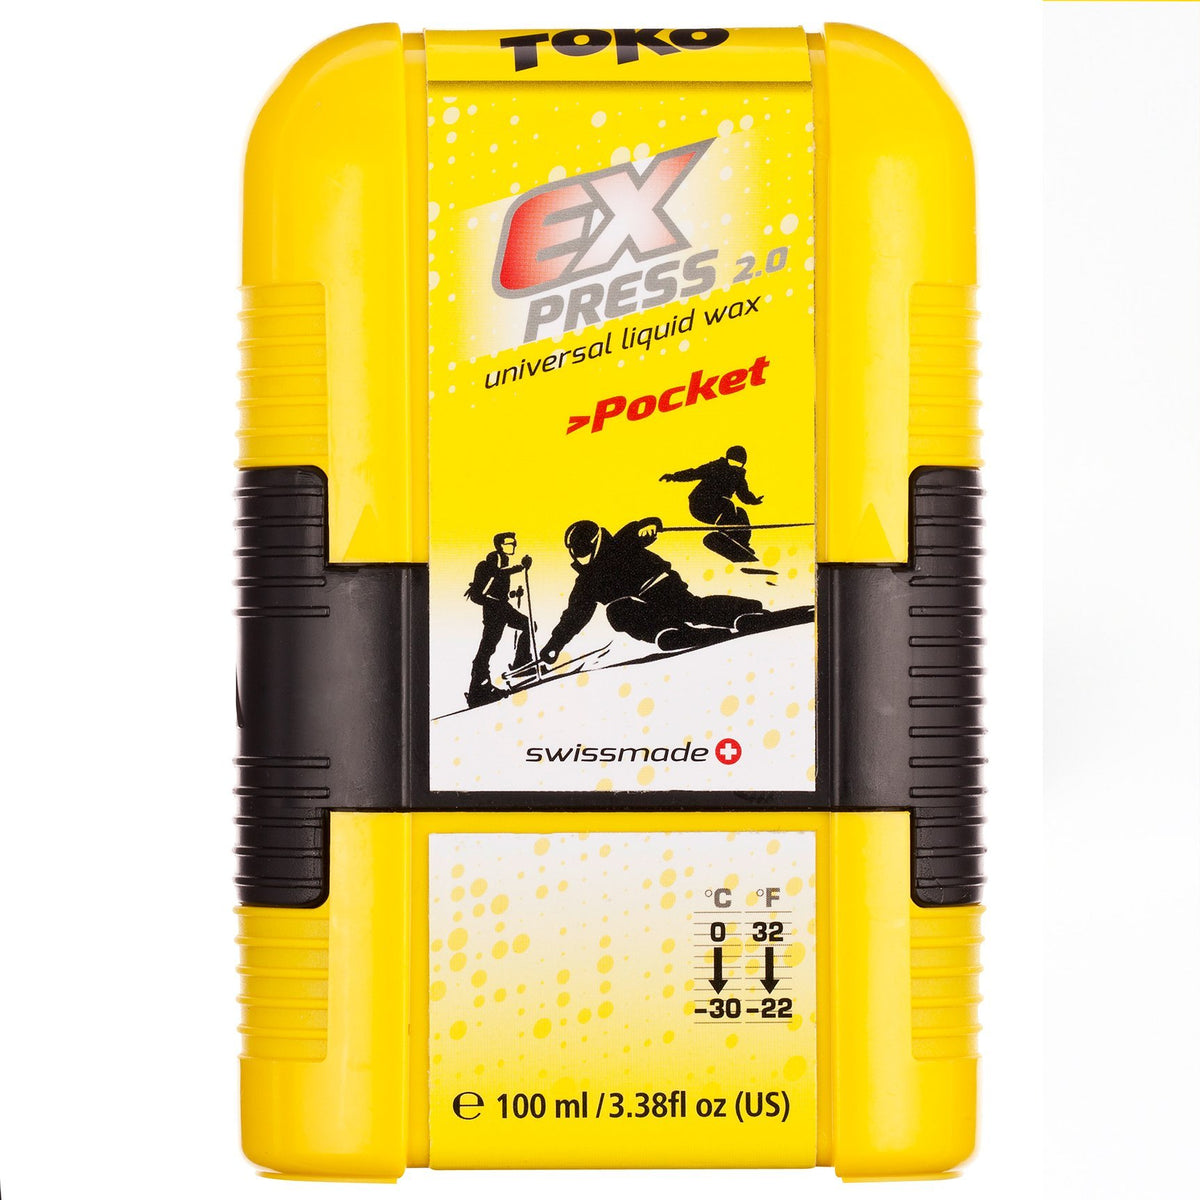 Toko Wax Toko Express Pocket Universal Ski & Snowboard Liquid Rub on Wax 100ml